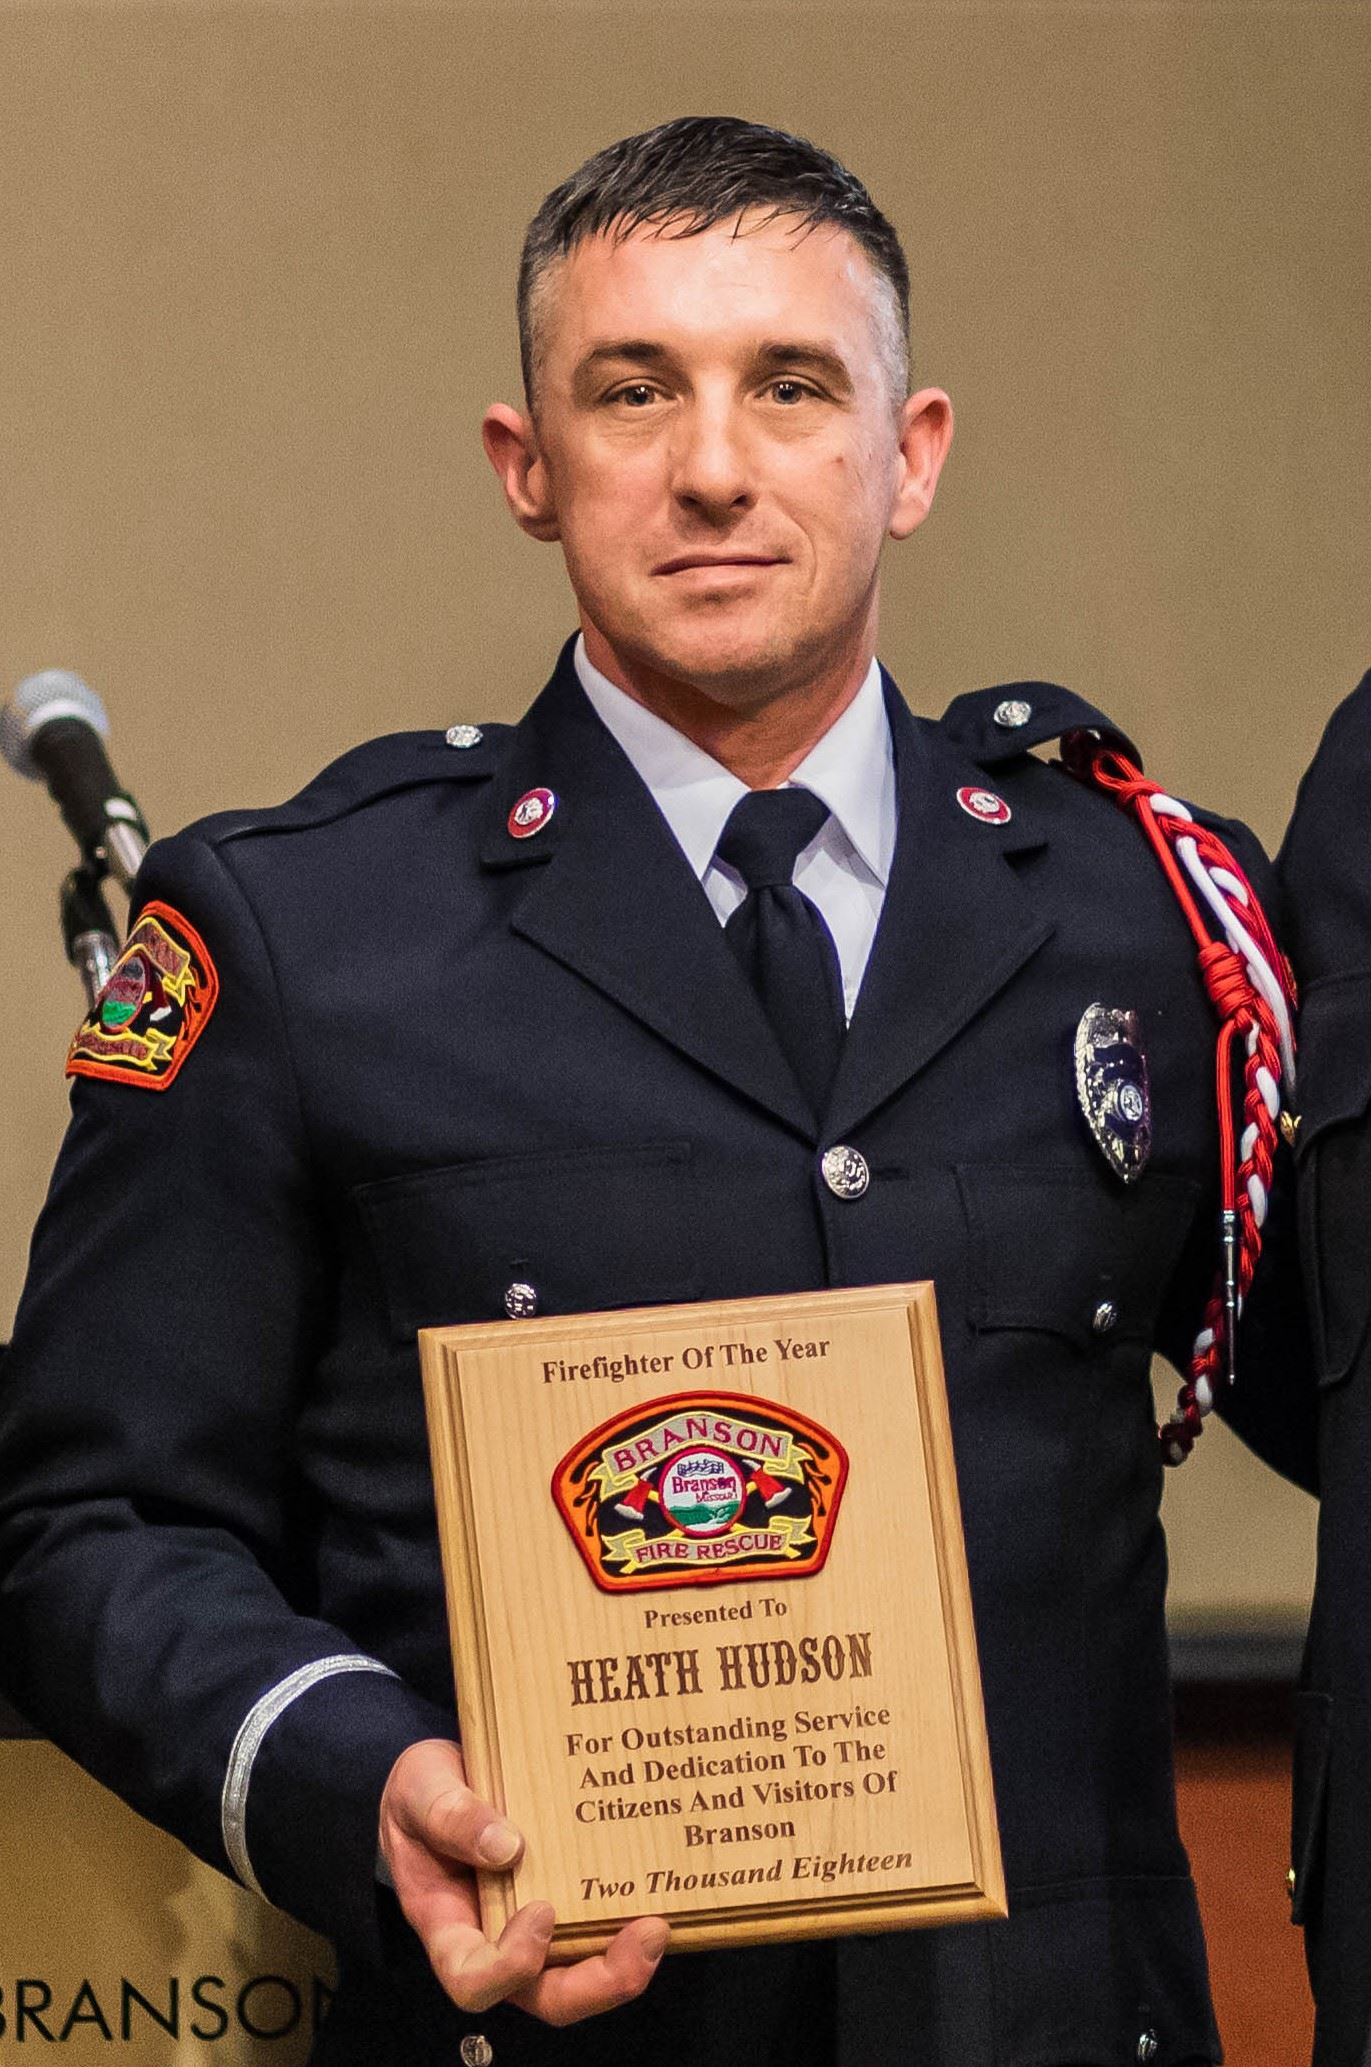 Firefighter of the year 2018